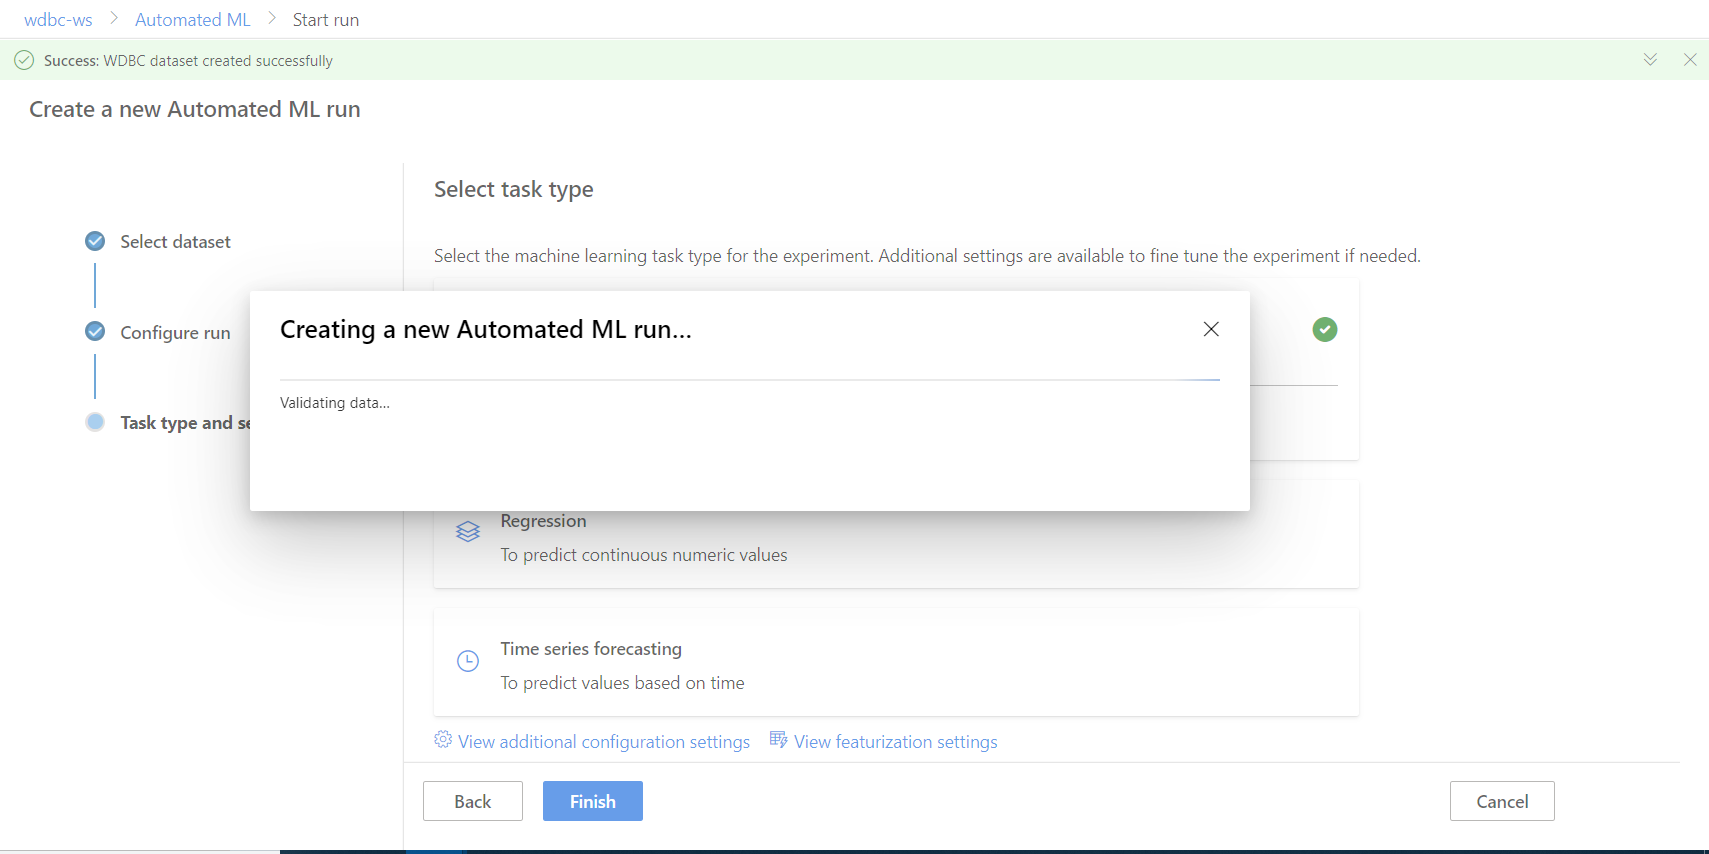 Azure Automated Machine Learning-Creating a New Automated MI Run